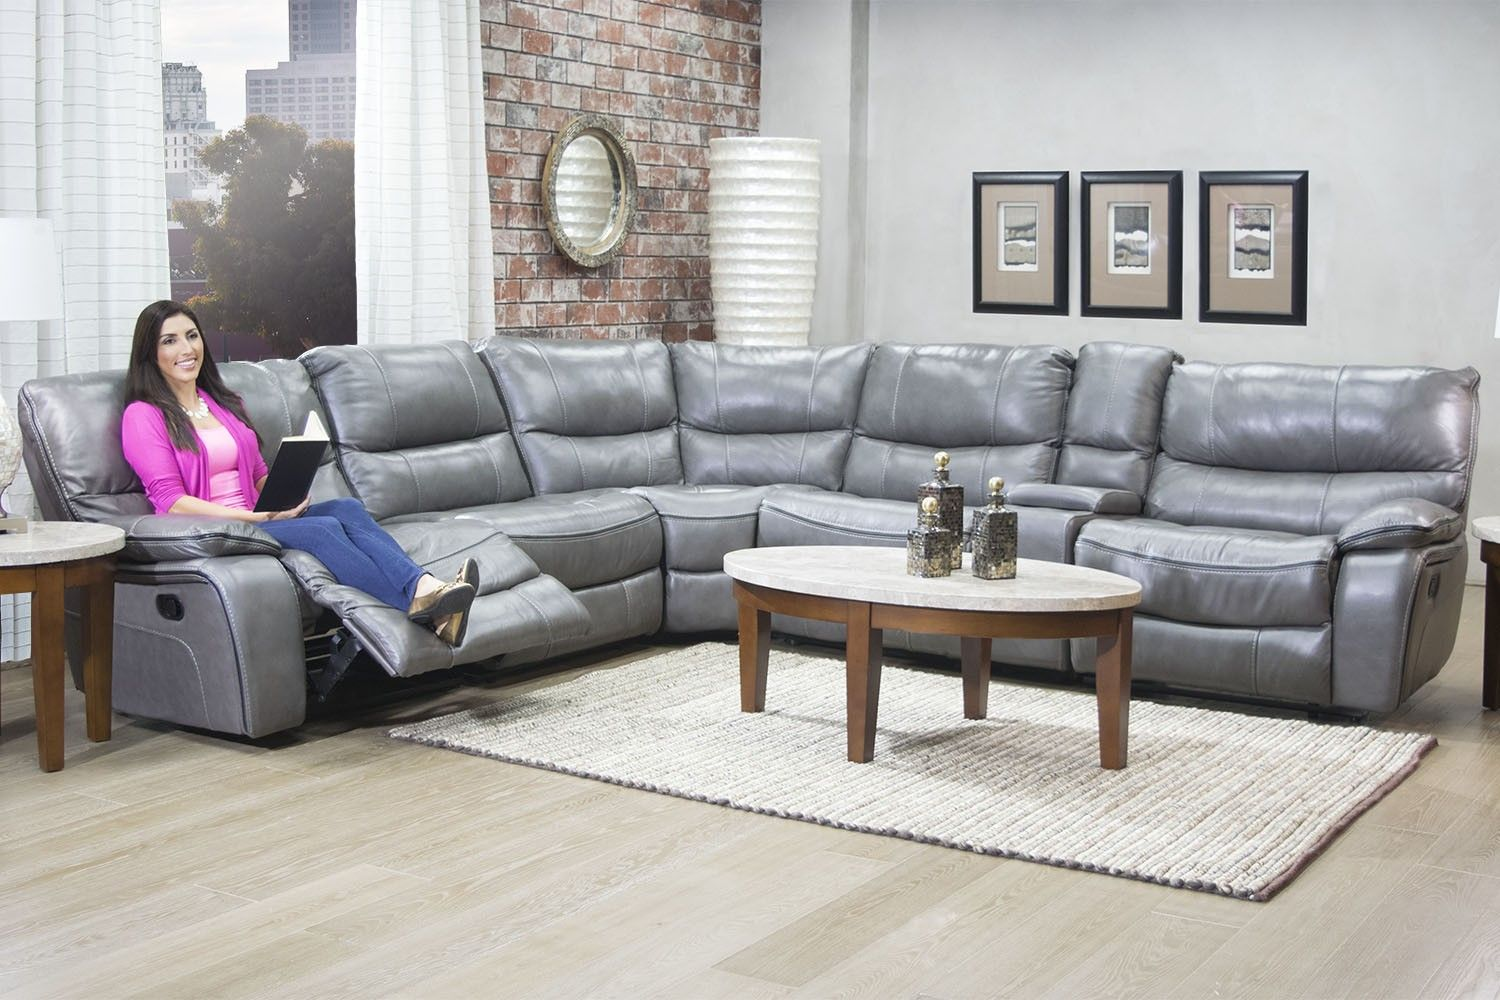 Mor furniture for less the lotus gray leather seating reclining living room mor furniture for less